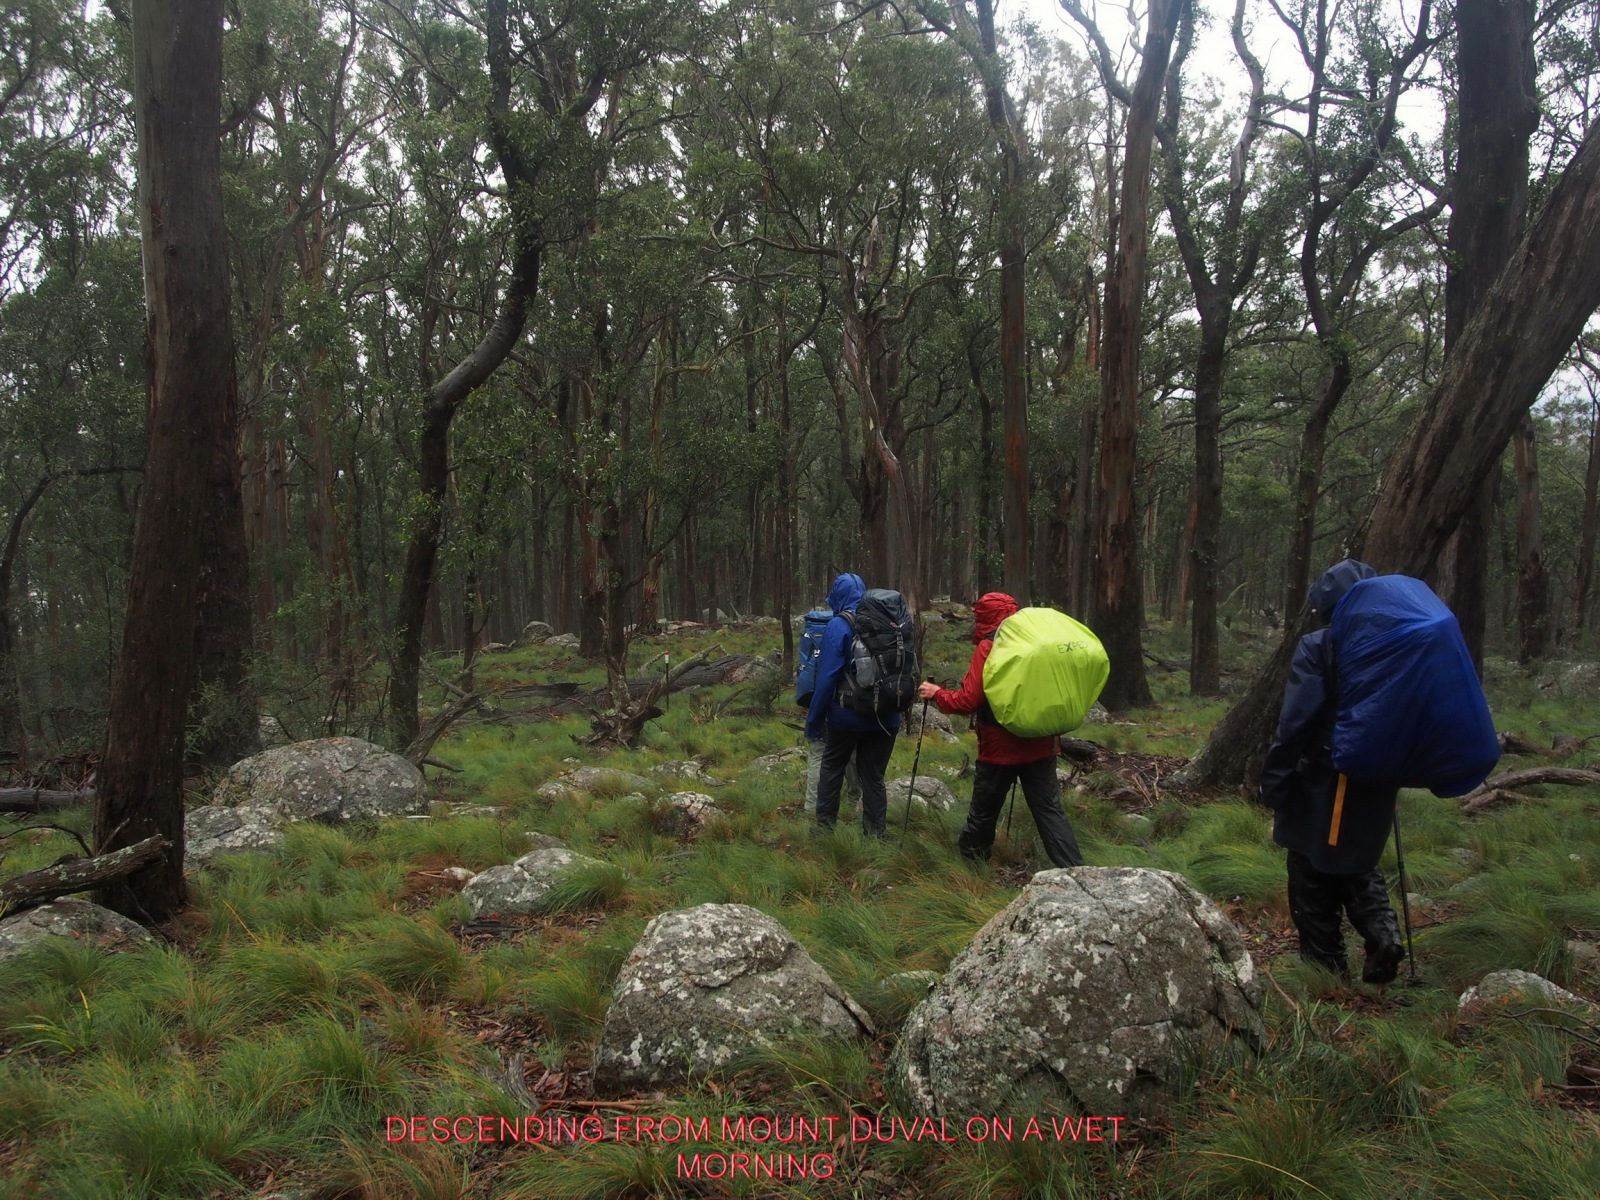 DESCENDING FROM MOUNT DUVAL ON A WET MORNING